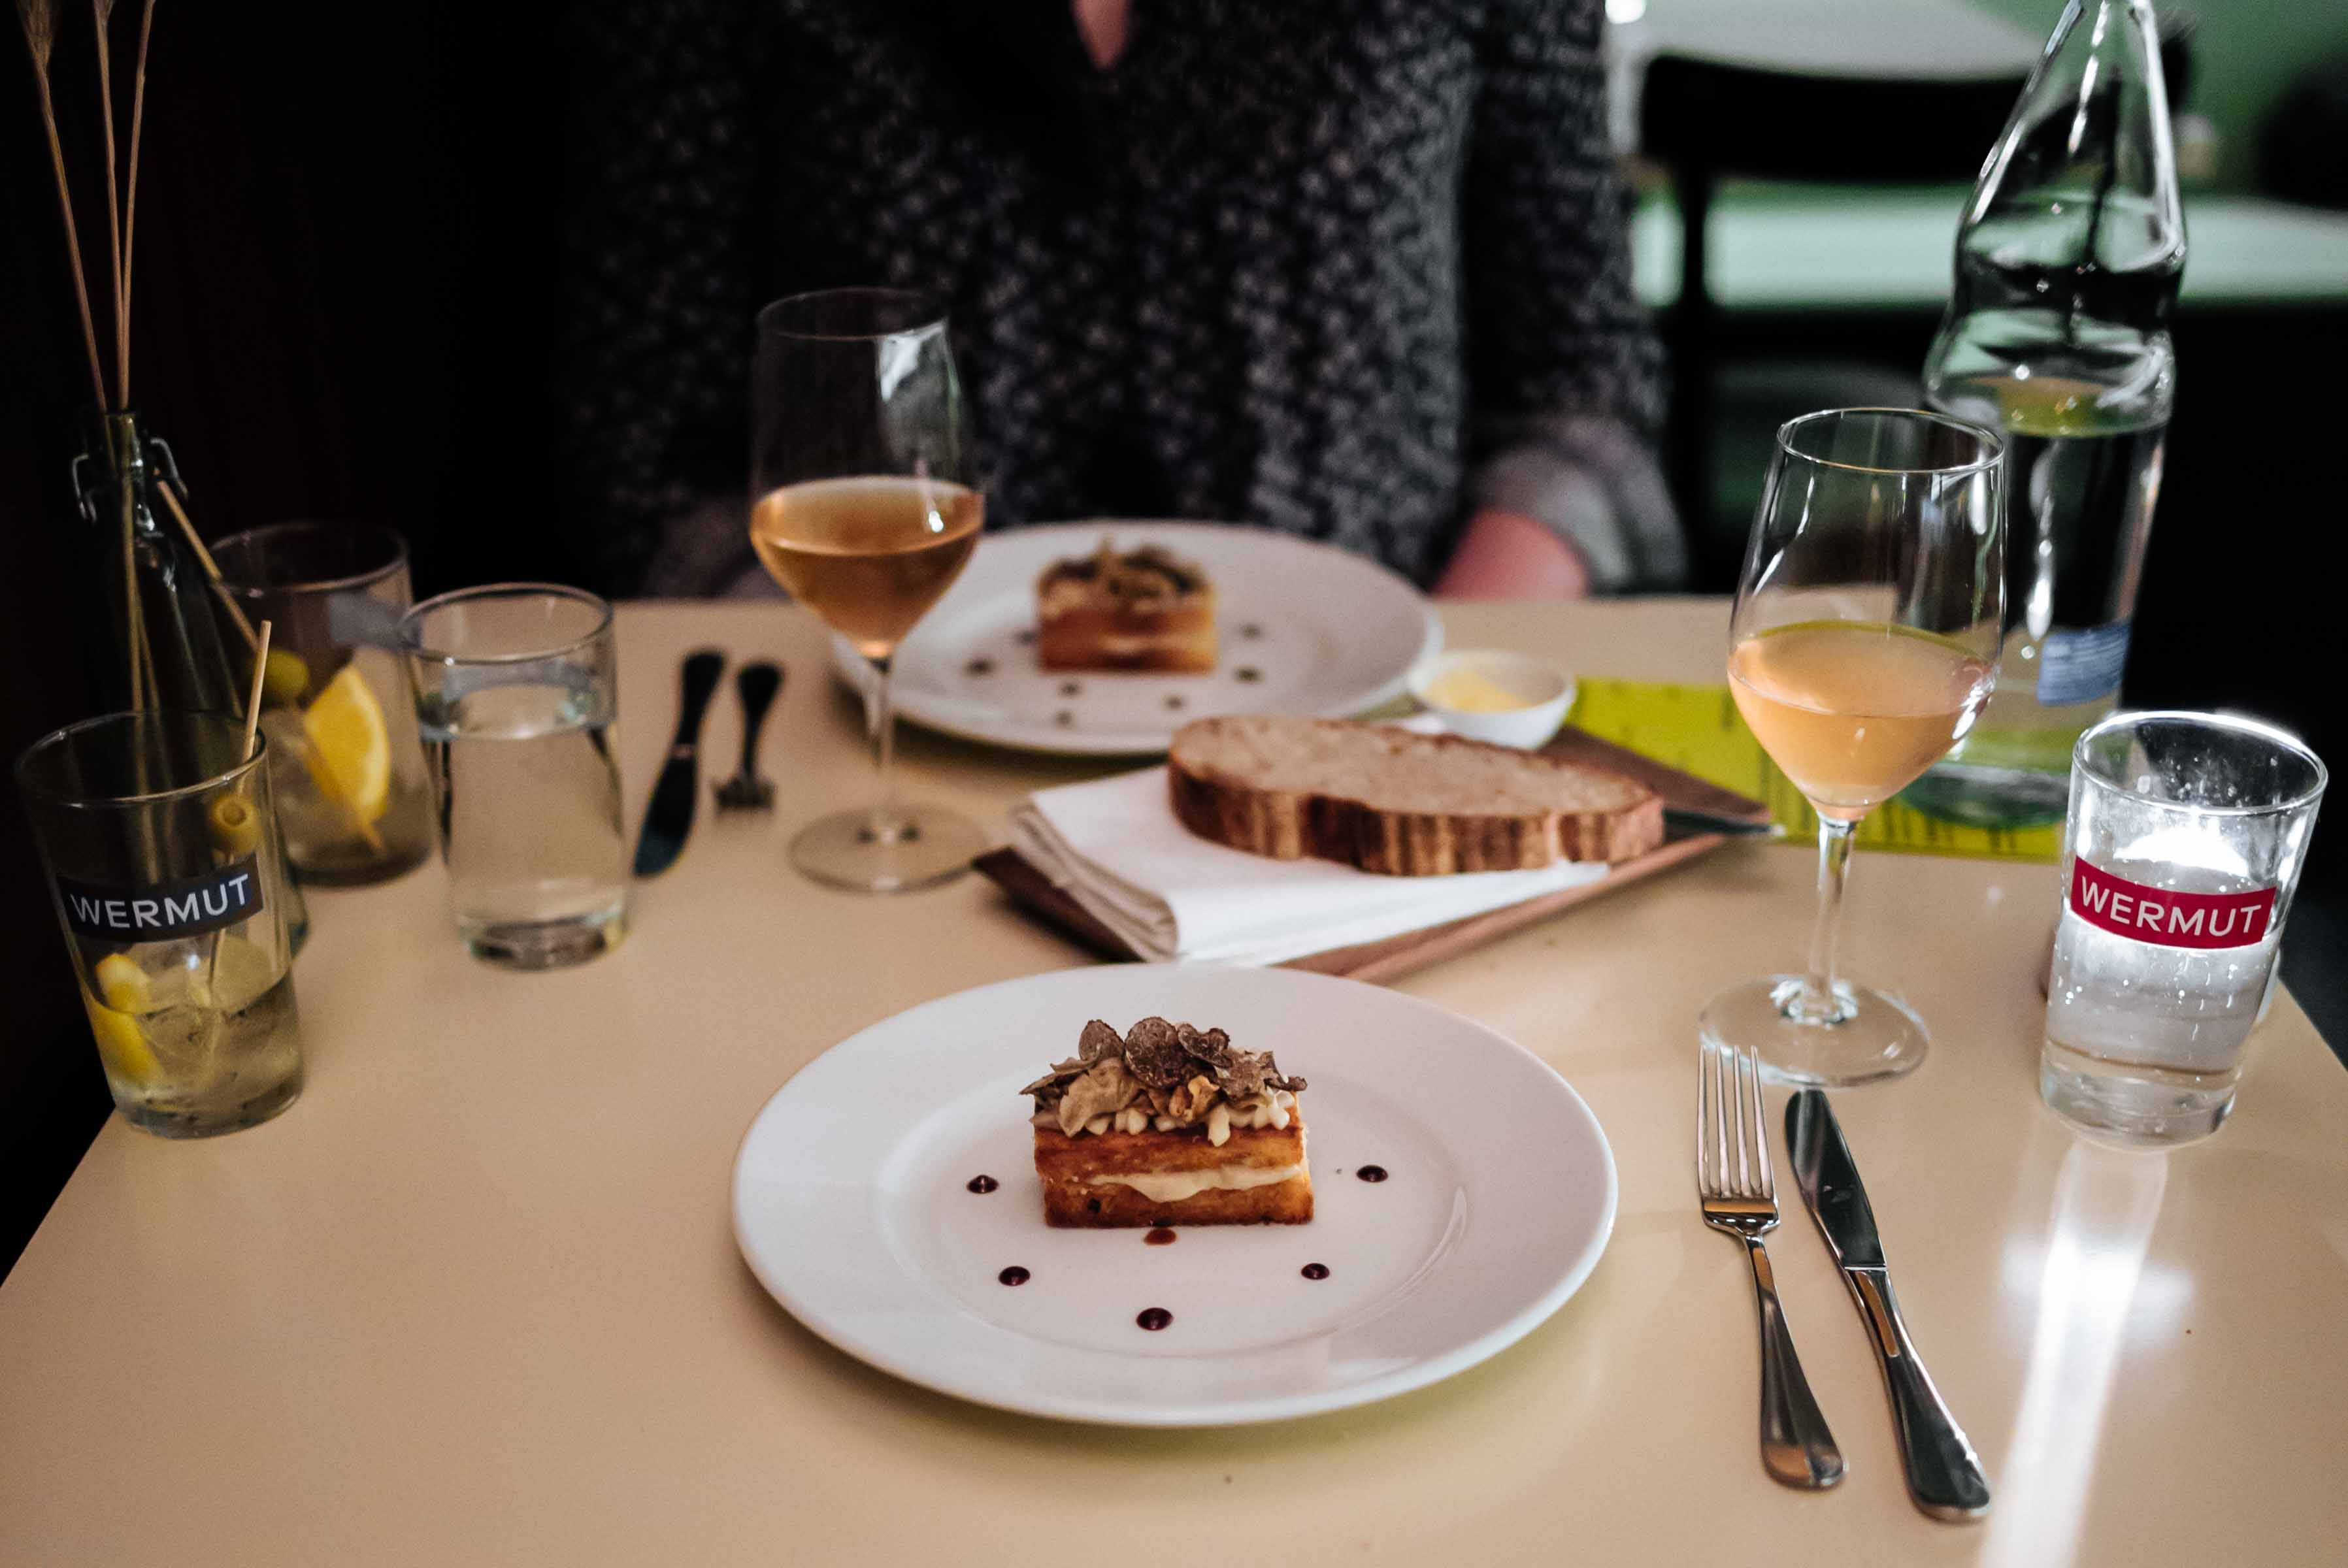 Zurich Restaurant: Wermut Vermouth Bar & Restaurant truffle brioche at dinner